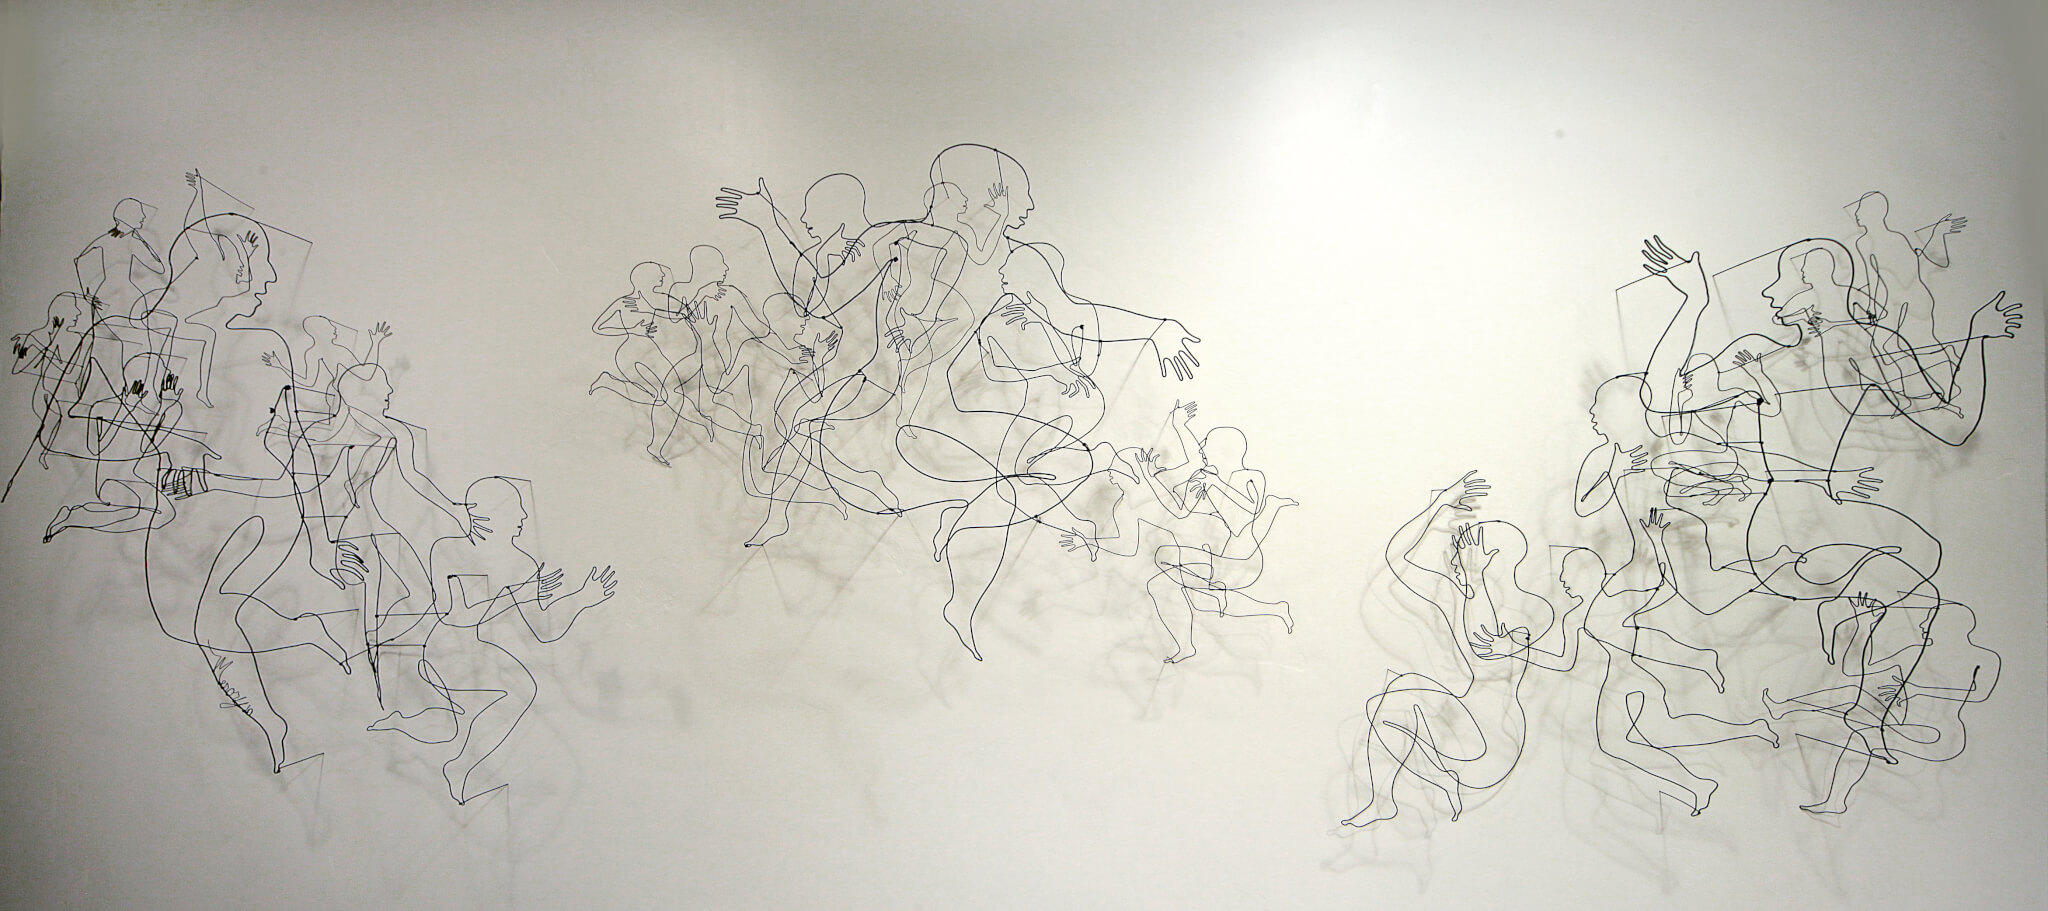 Finding Common Ground, 2010